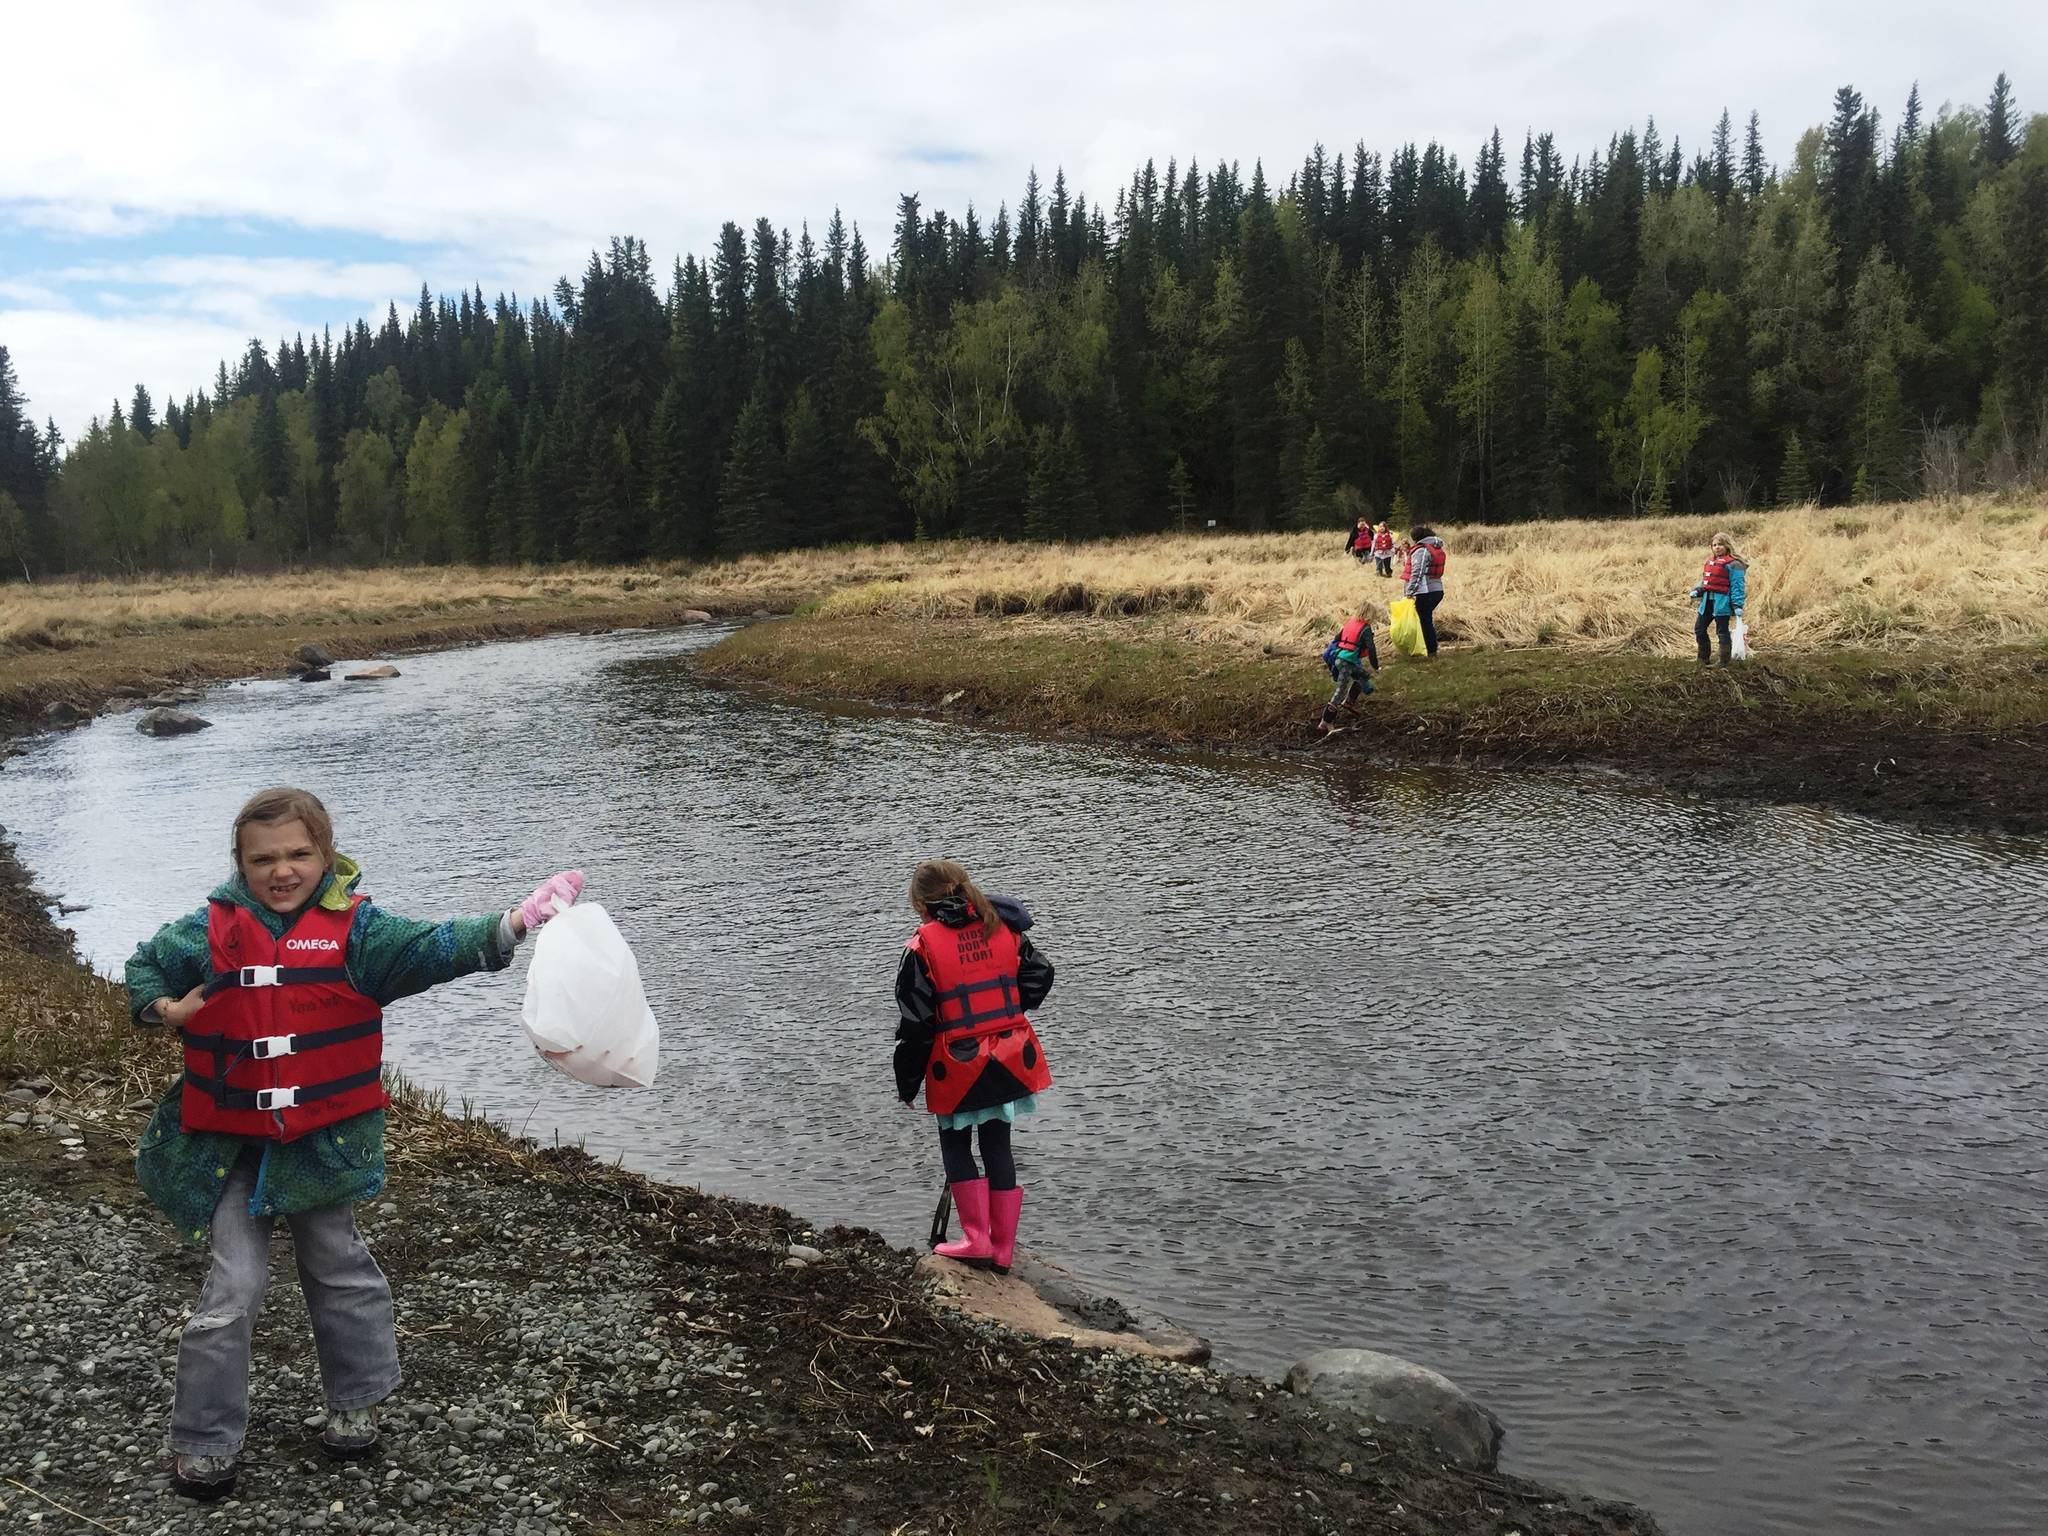 Community groups, like this Girl Scout Troop cleaning up Slikok Creek, help get the Kenai Peninsula ready for summer. (Photo by Leah Eskelin/USFWS)